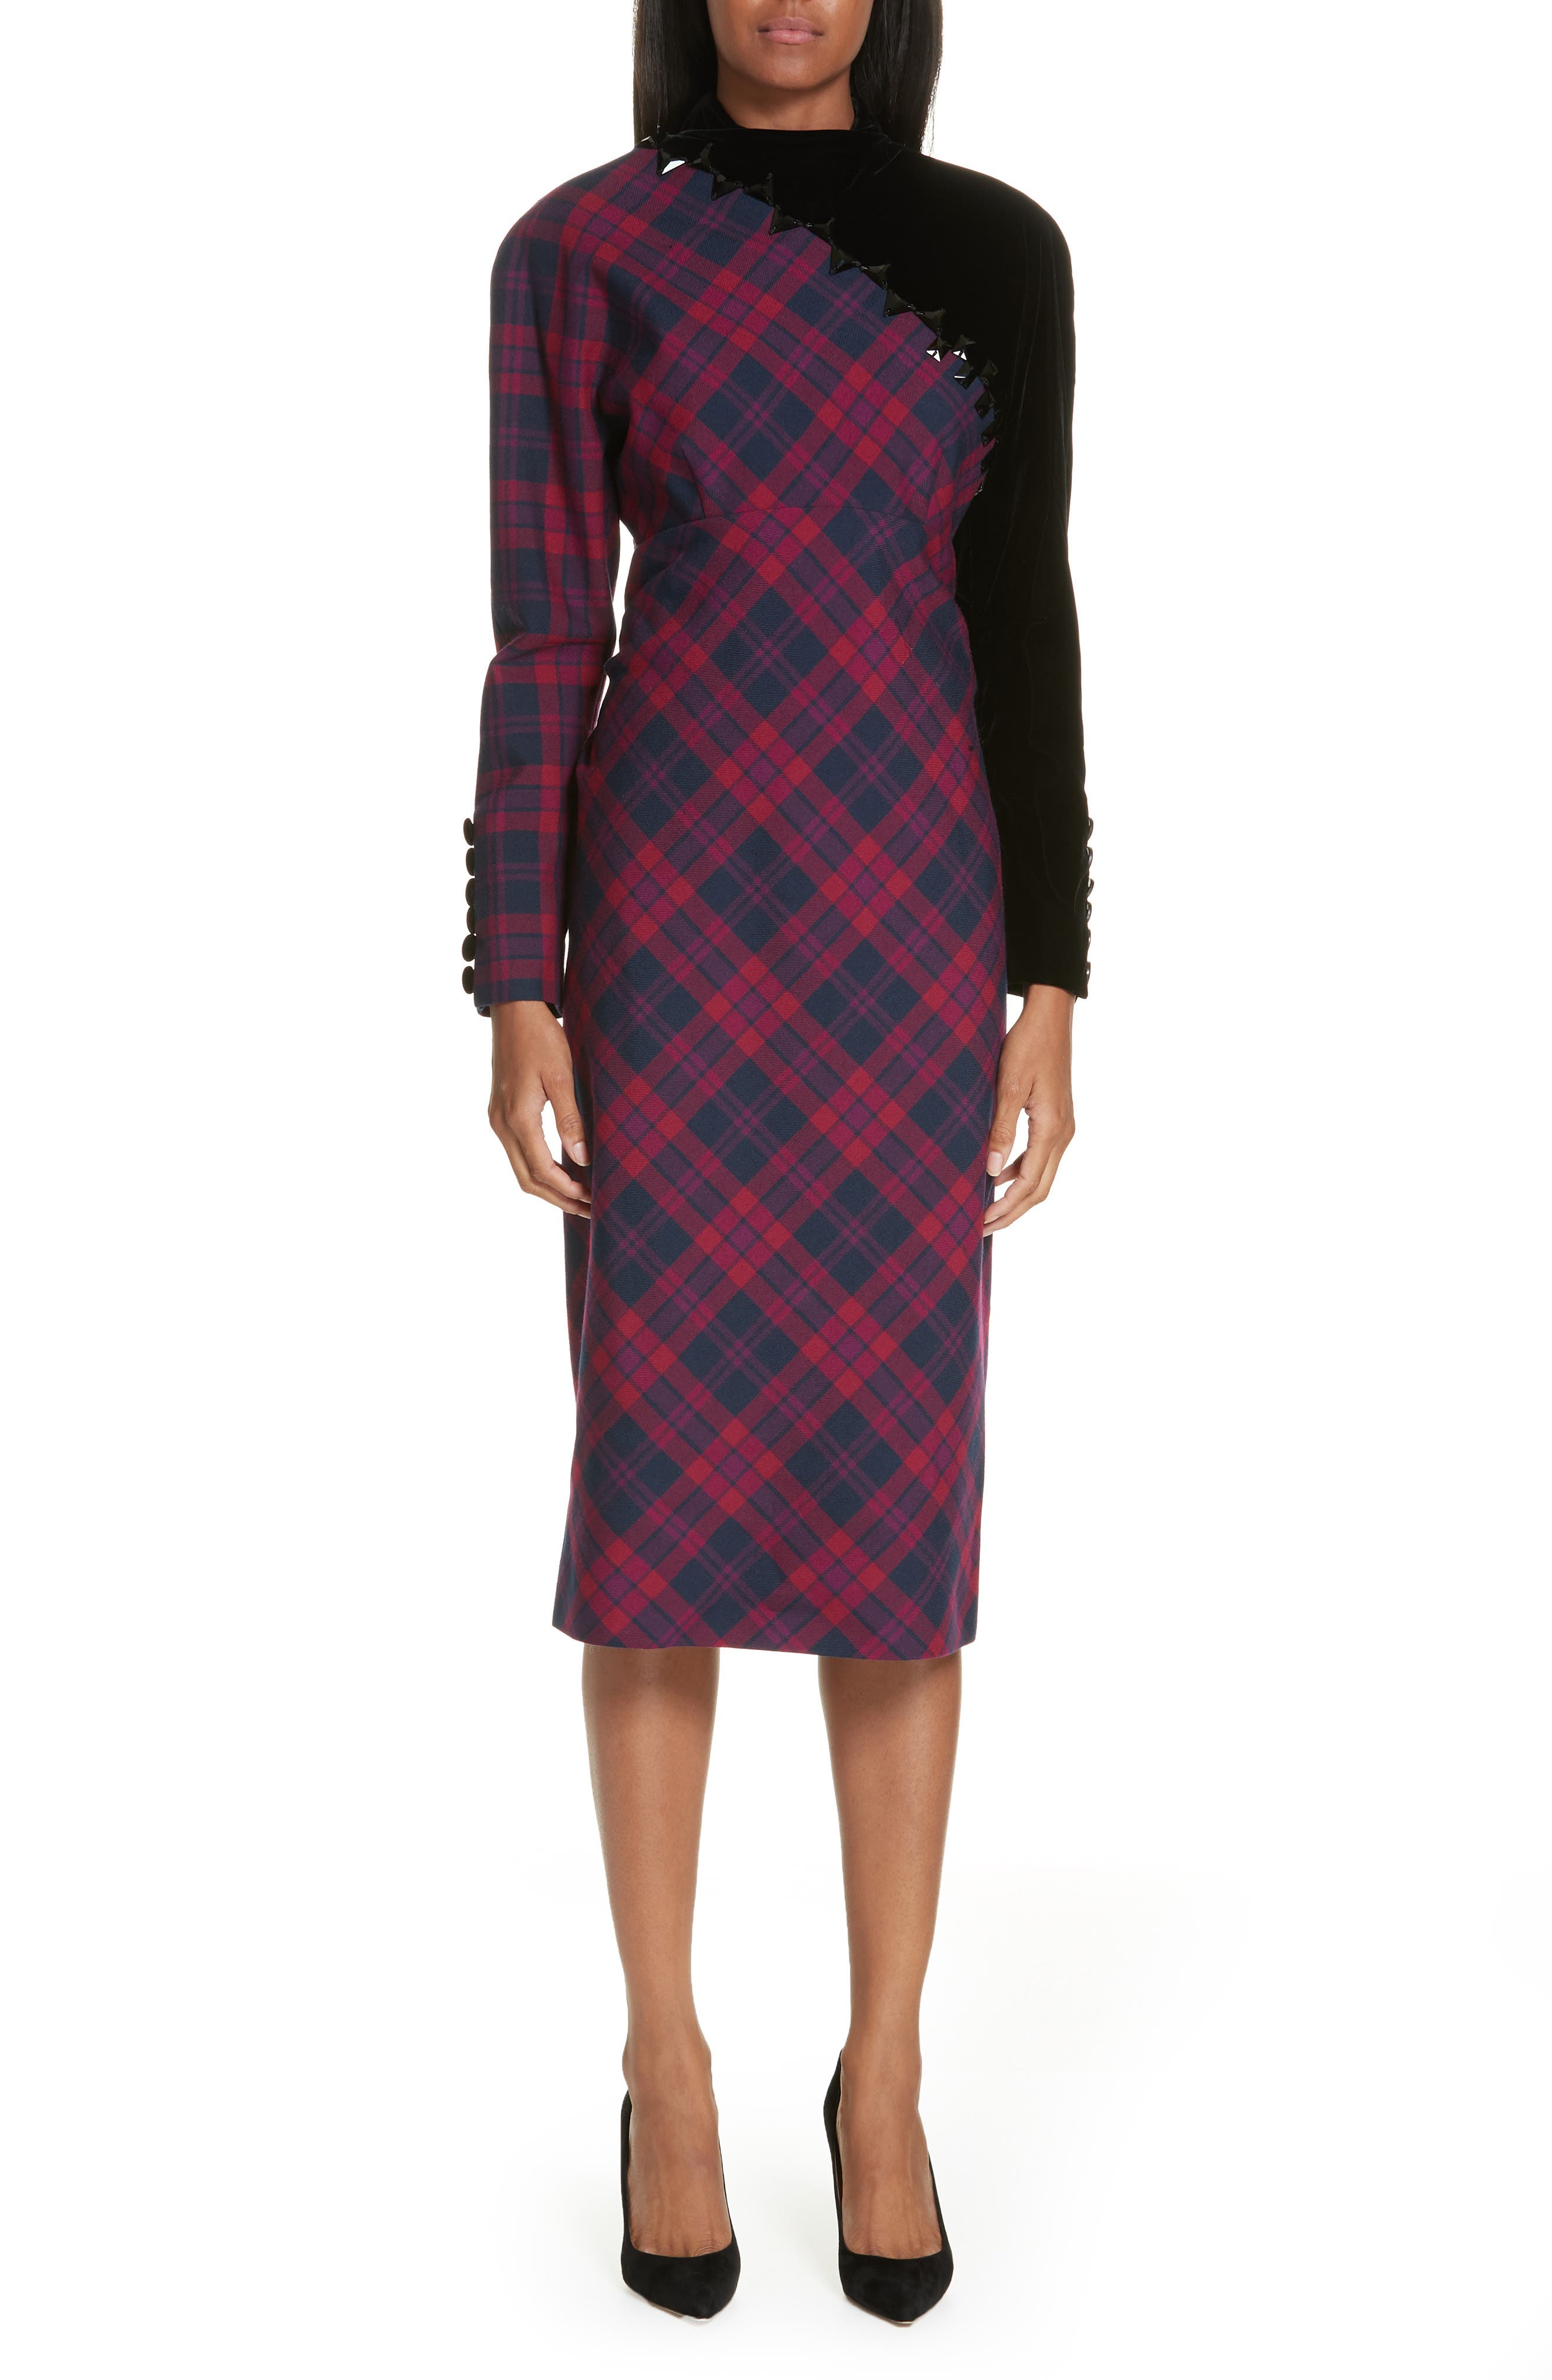 Marc Jacobs Embellished Plaid Dress, Pink